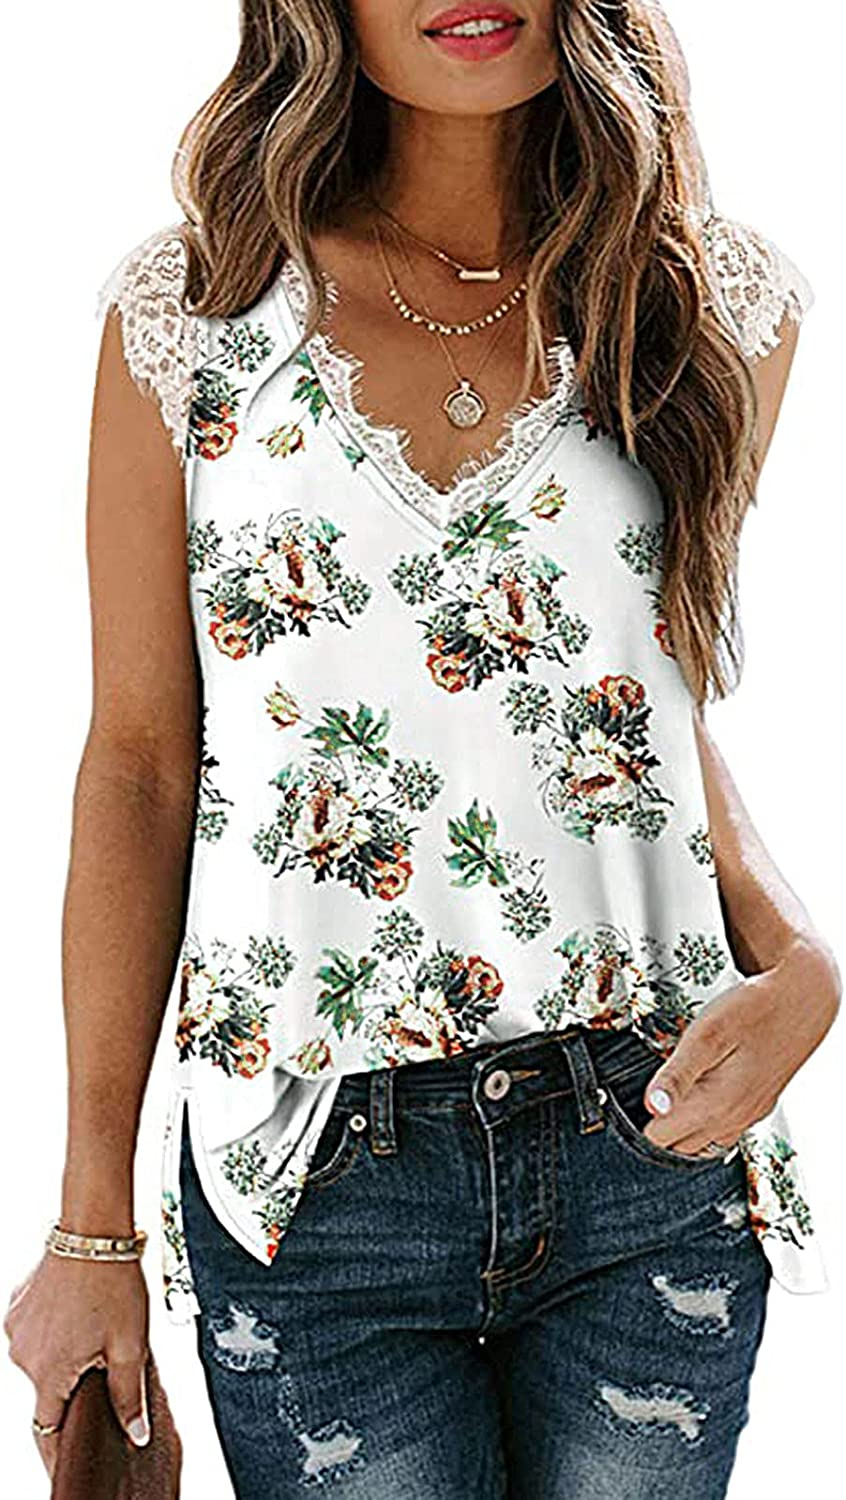 Summer Tops for Women Sexy Casual,Women's V Neck Lace Trim Cami Tops Fashion Elegant Summer T Shirts